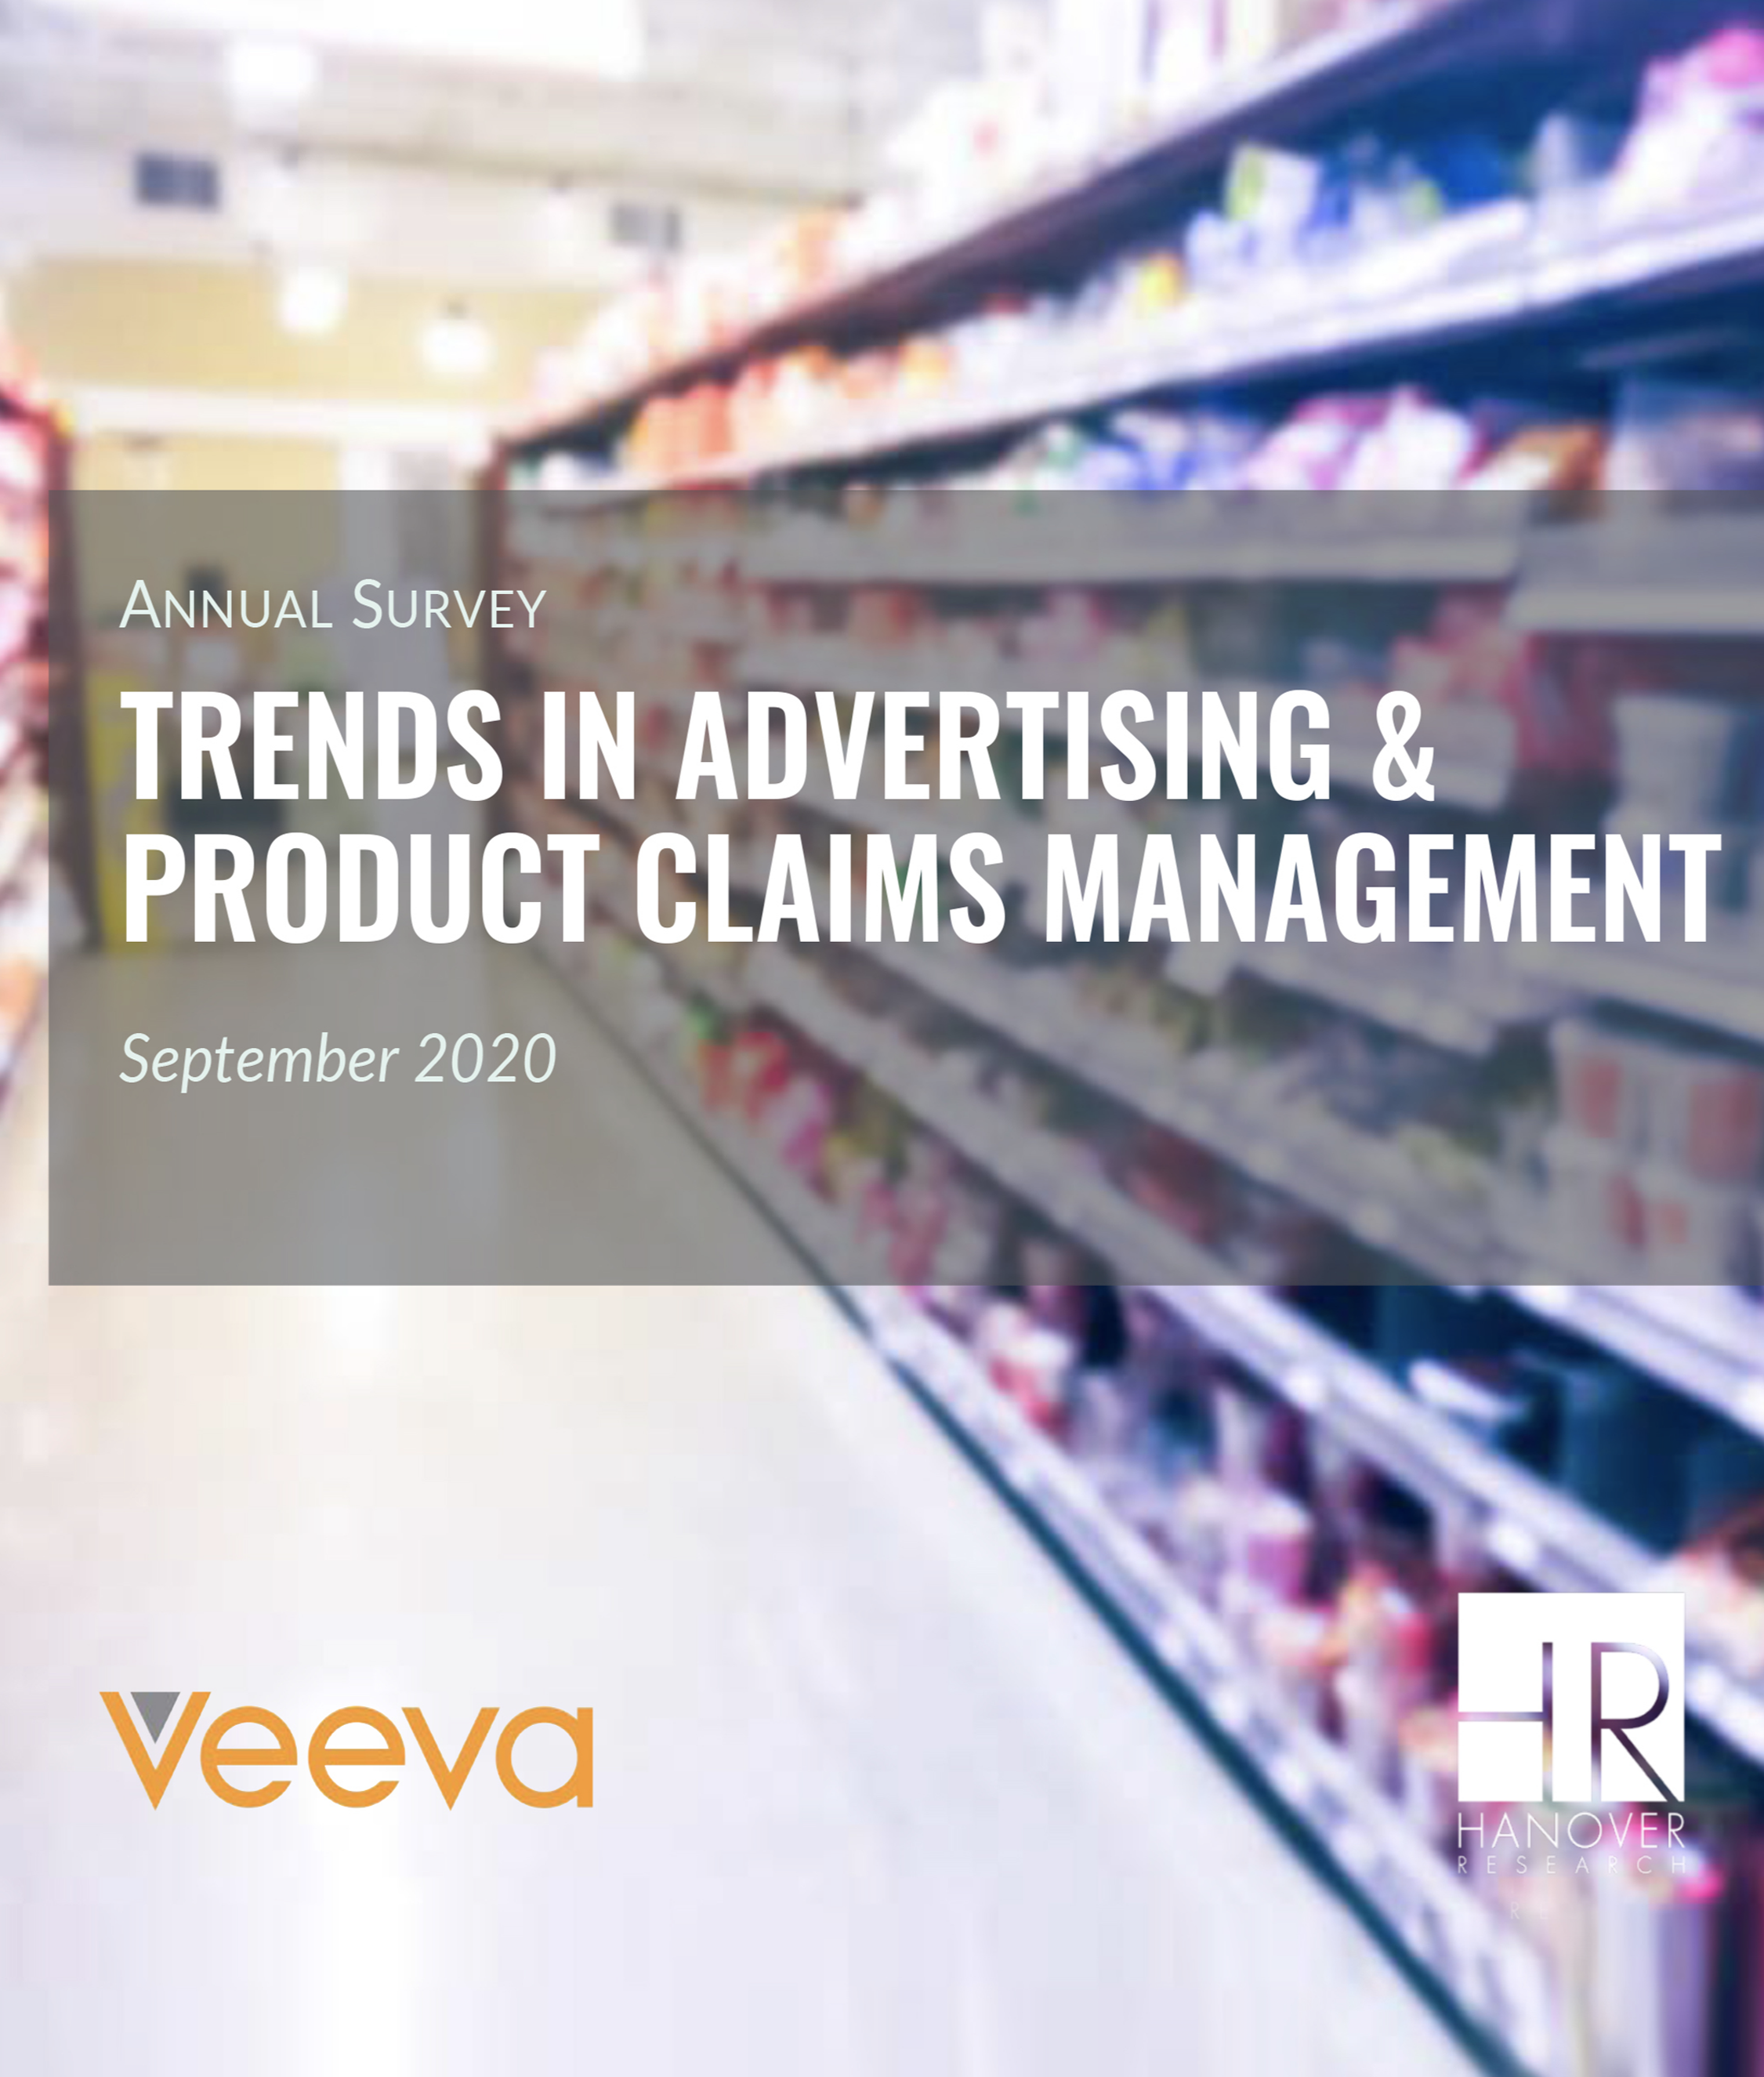 2020-Trends-in-Advertising-Claims-Mgmt-Report-cover-3-3